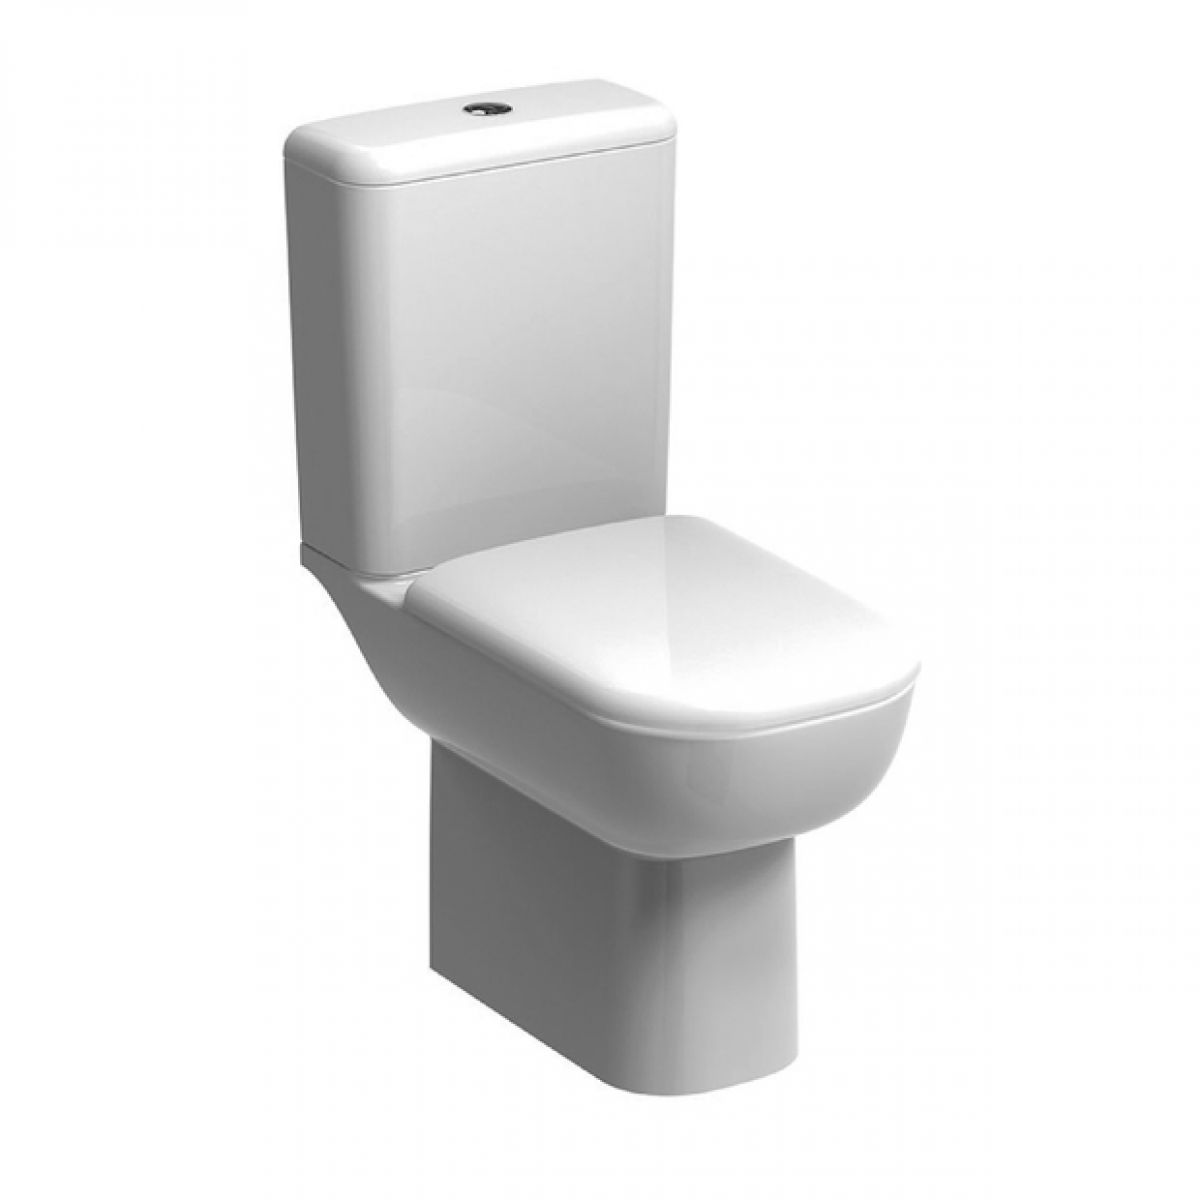 Geberit smyle close coupled toilet rimfree bathrooms for Geberit products